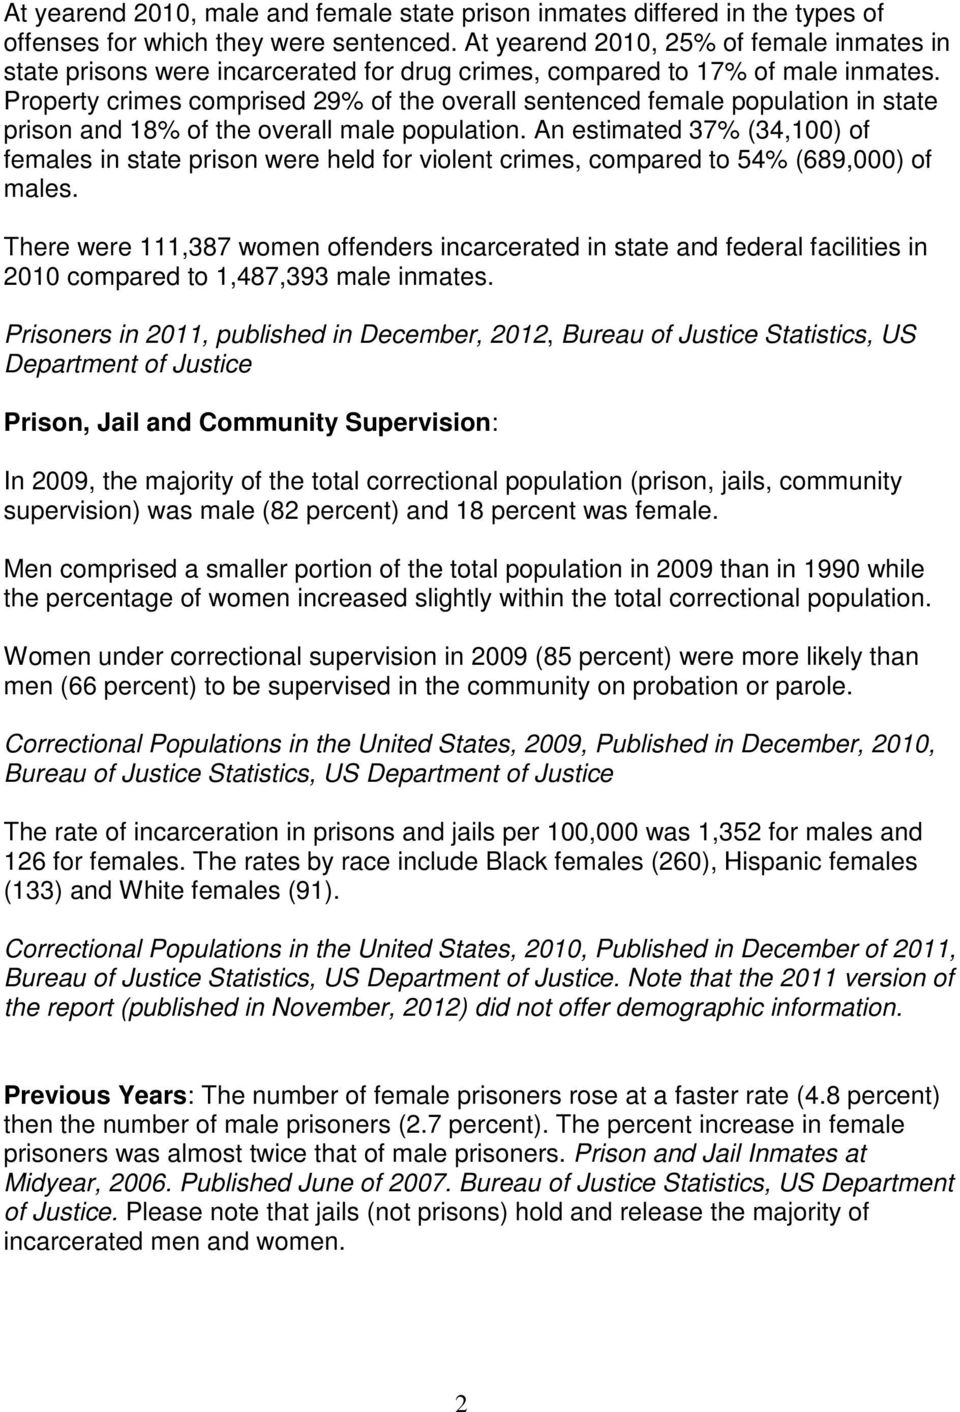 Property crimes comprised 29% of the overall sentenced female population in state prison and 18% of the overall male population.